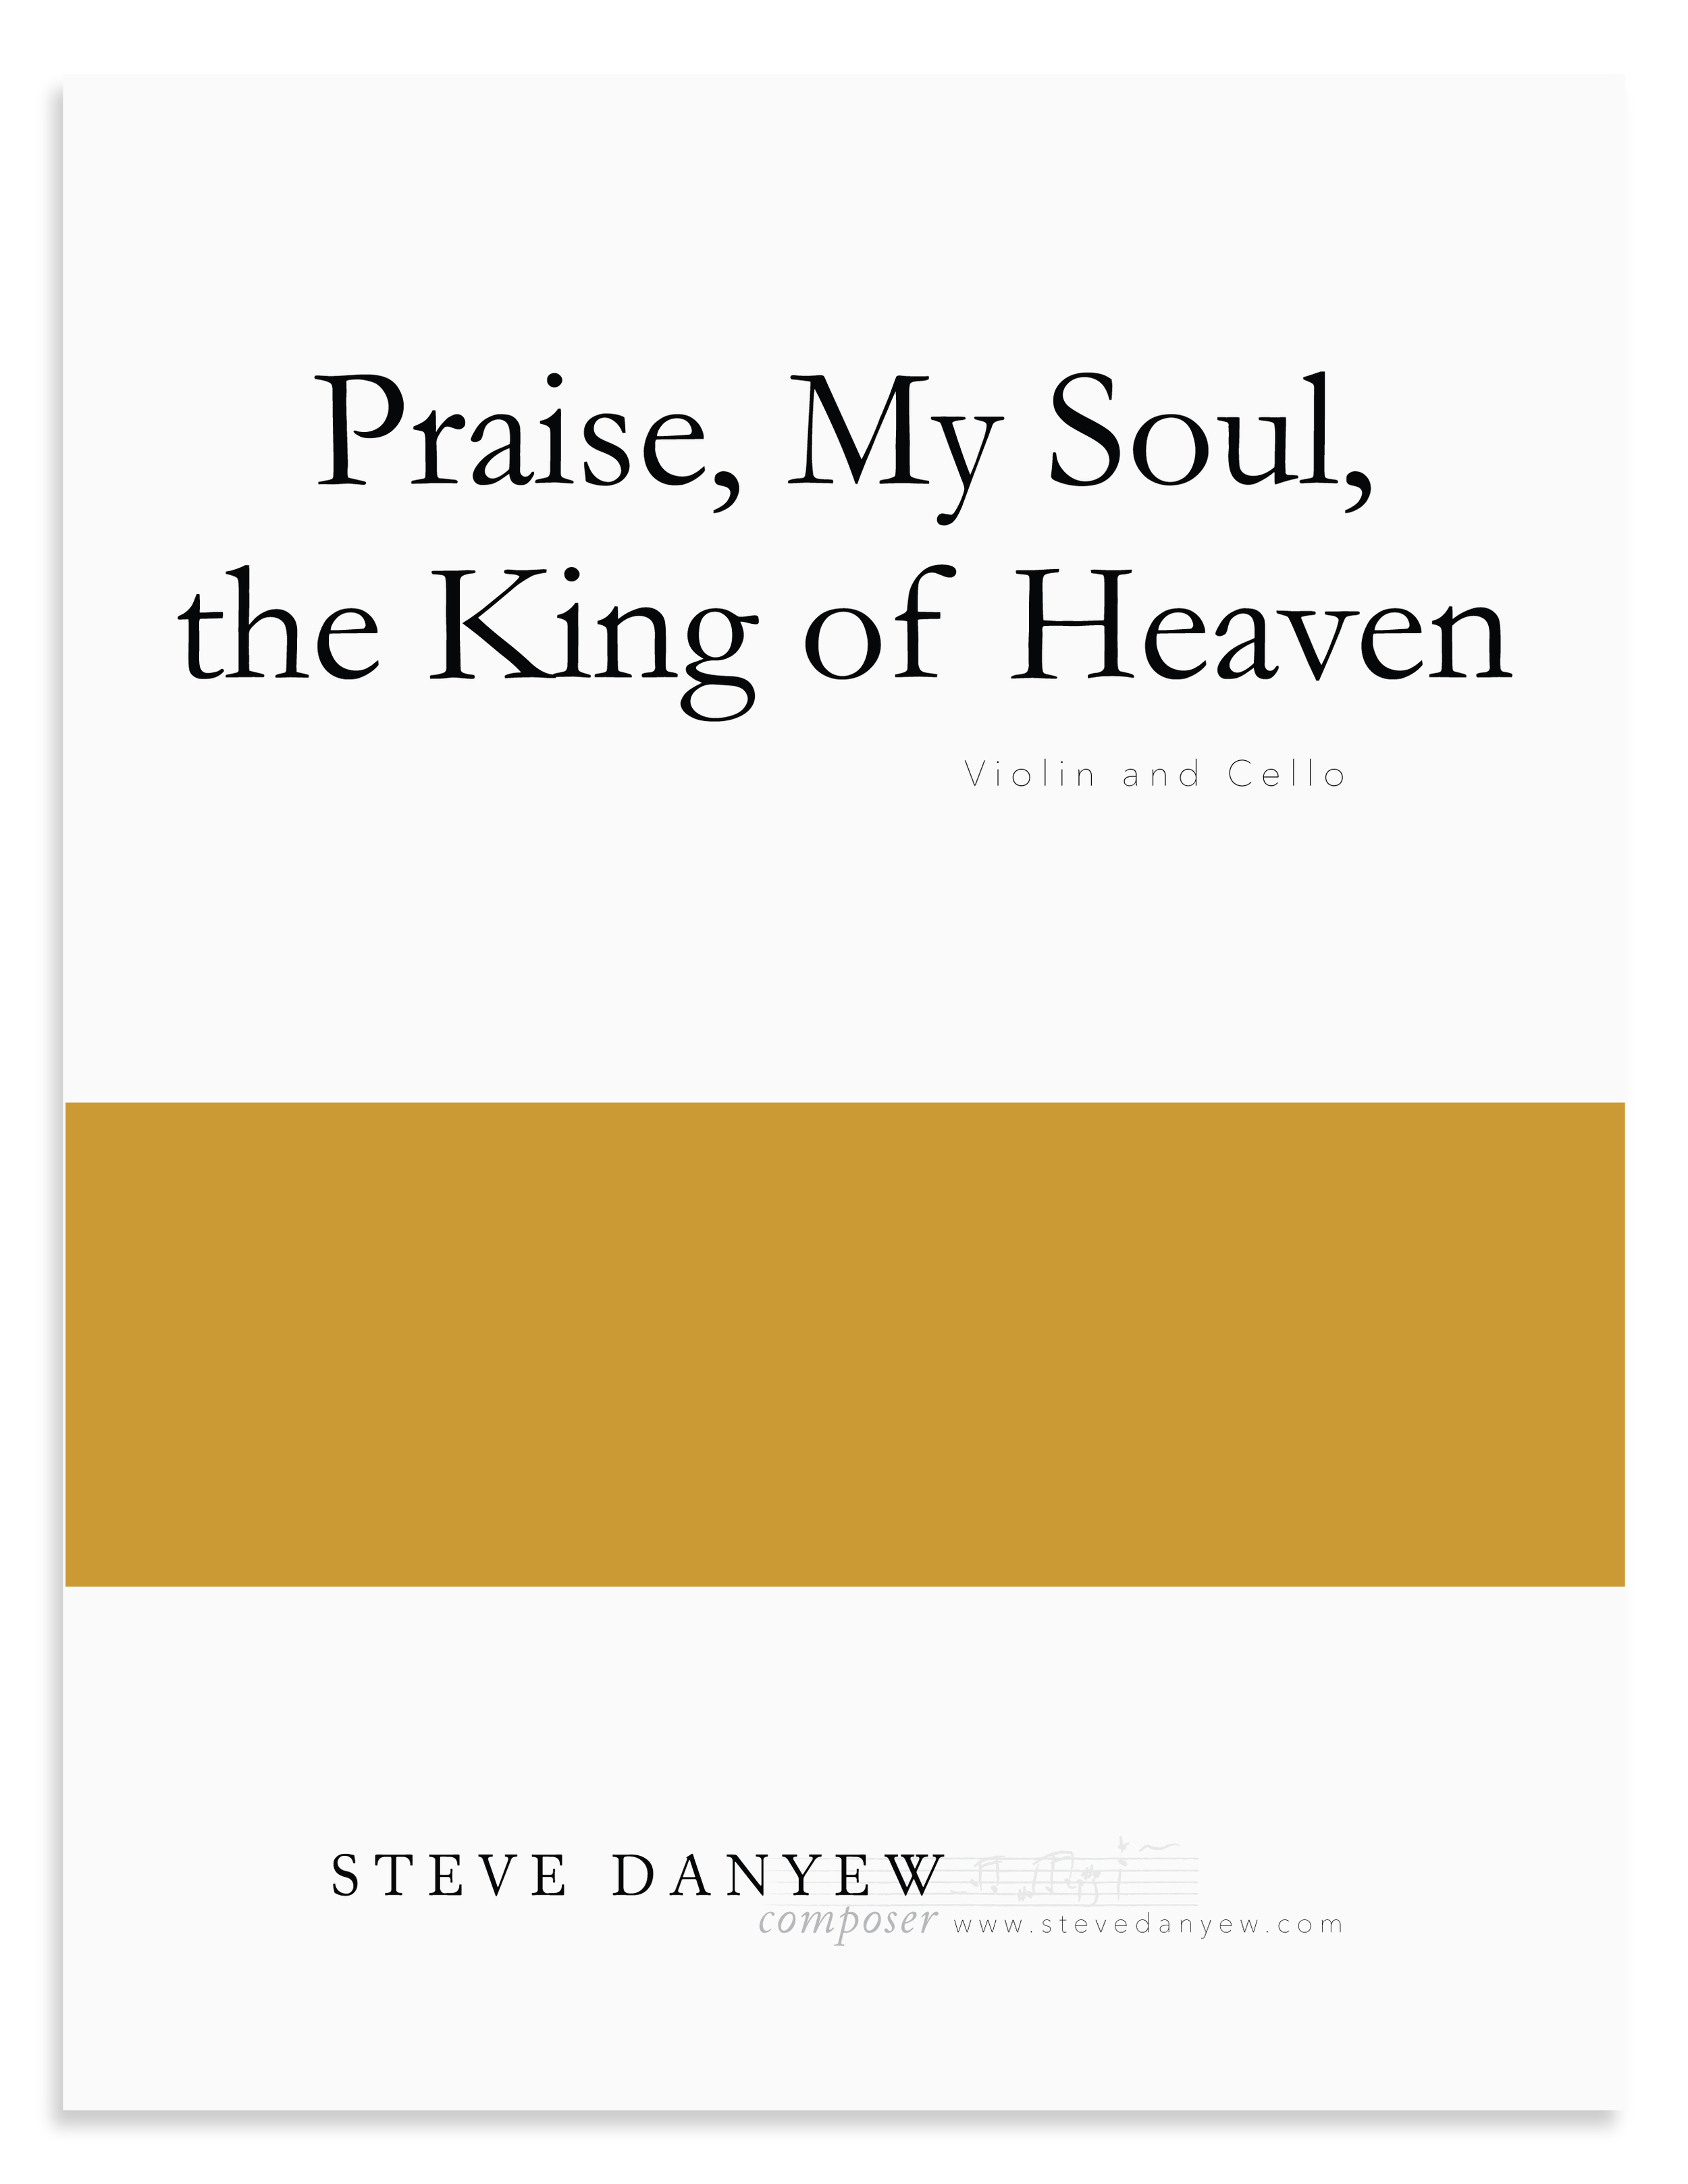 Praise, My Soul, the King of Heaven (Violin & Cello) — Steve Danyew |  Composer